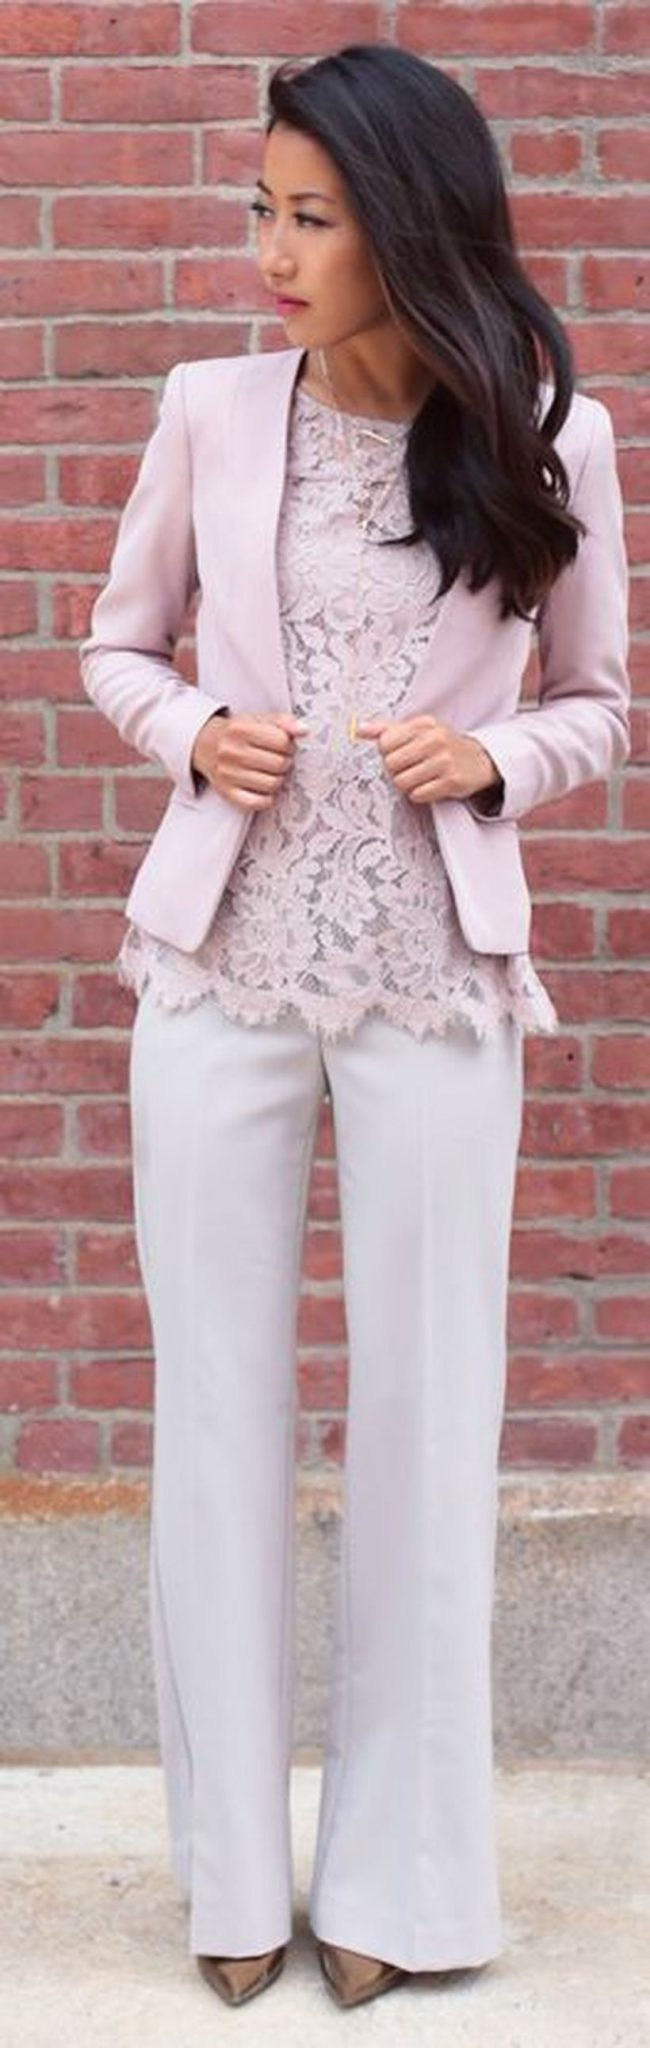 Fashionable day to night fashion outfits ideas 93